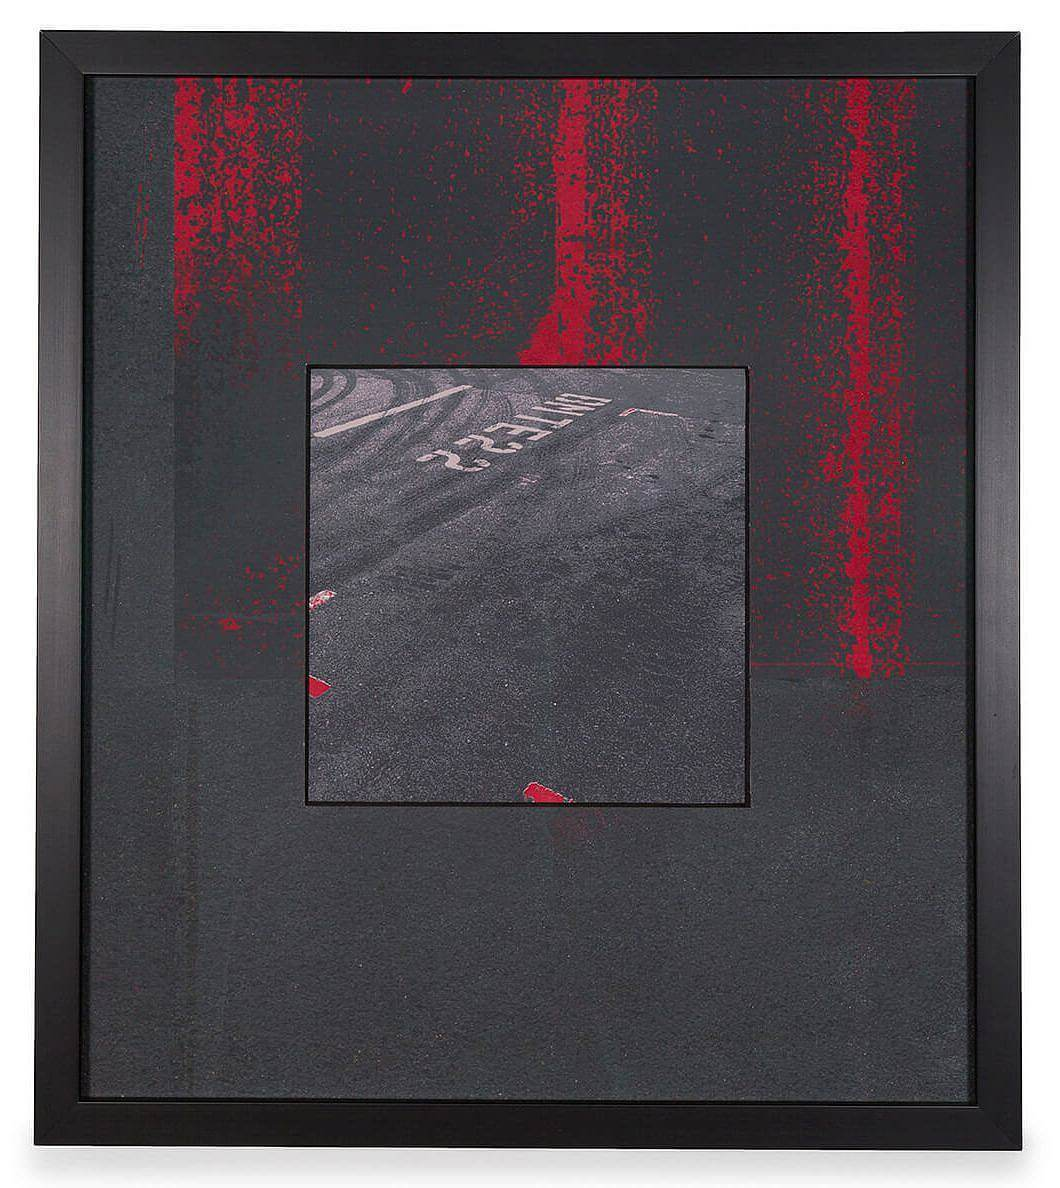 Image Description: There is a square image in the center of the piece that depicts a birds-eye view of an asphalt parking lot or street. The image is surrounded by a thick black border with bright red vertical streaks coming down from the top.